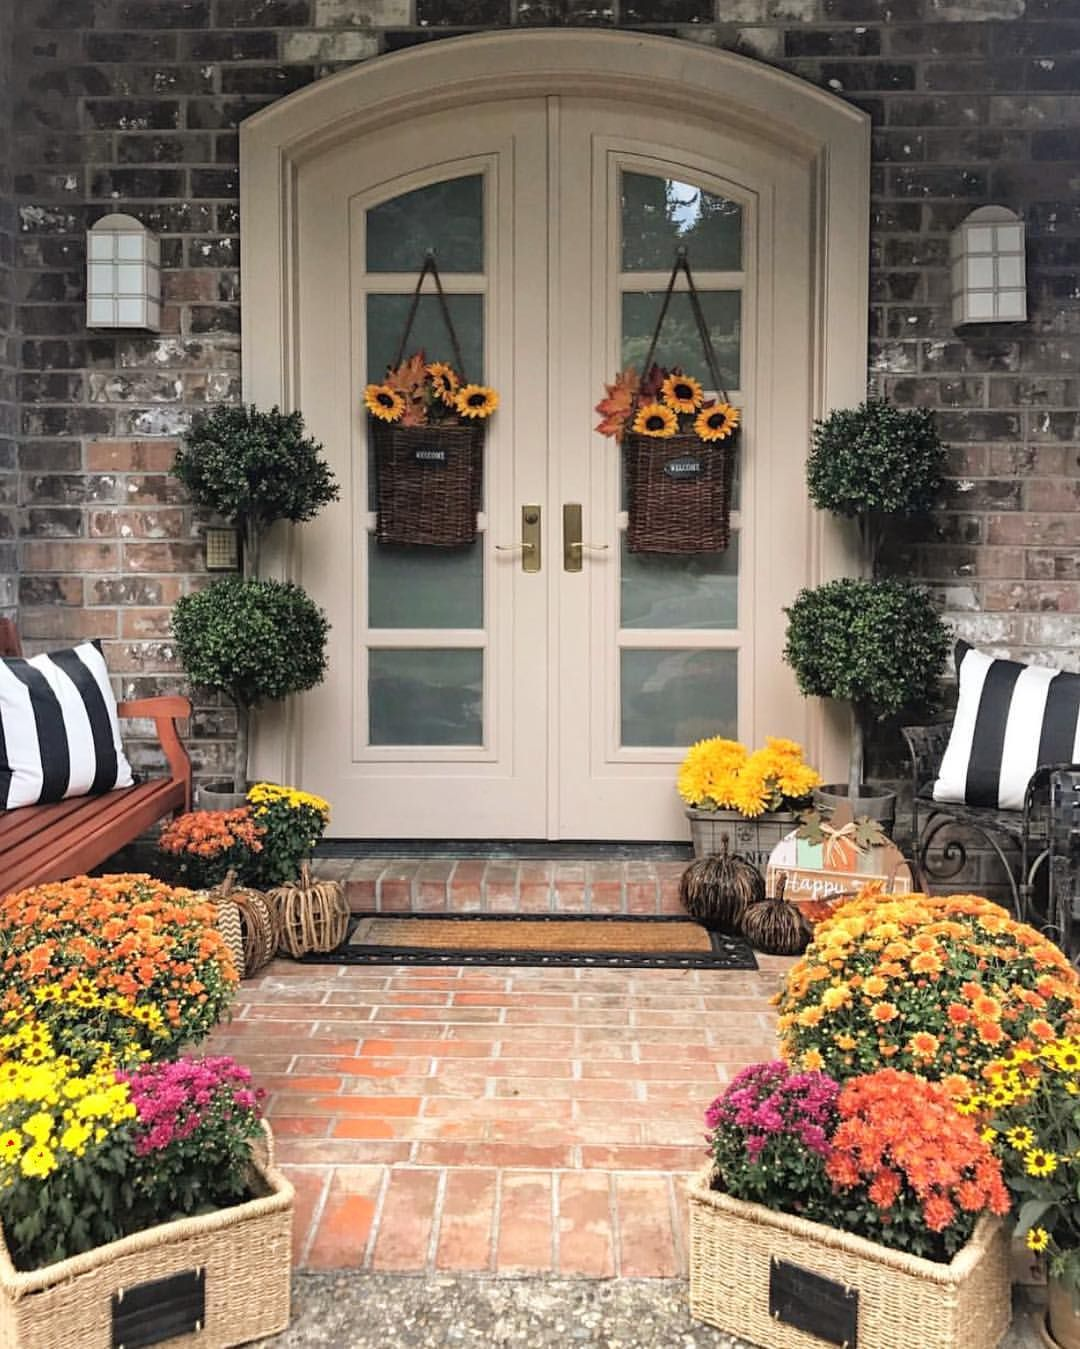 Front Entryway Decorating Ideas The Design Twins: I Haven't Brought Out Any Of My Fall Decor Yet But I'm